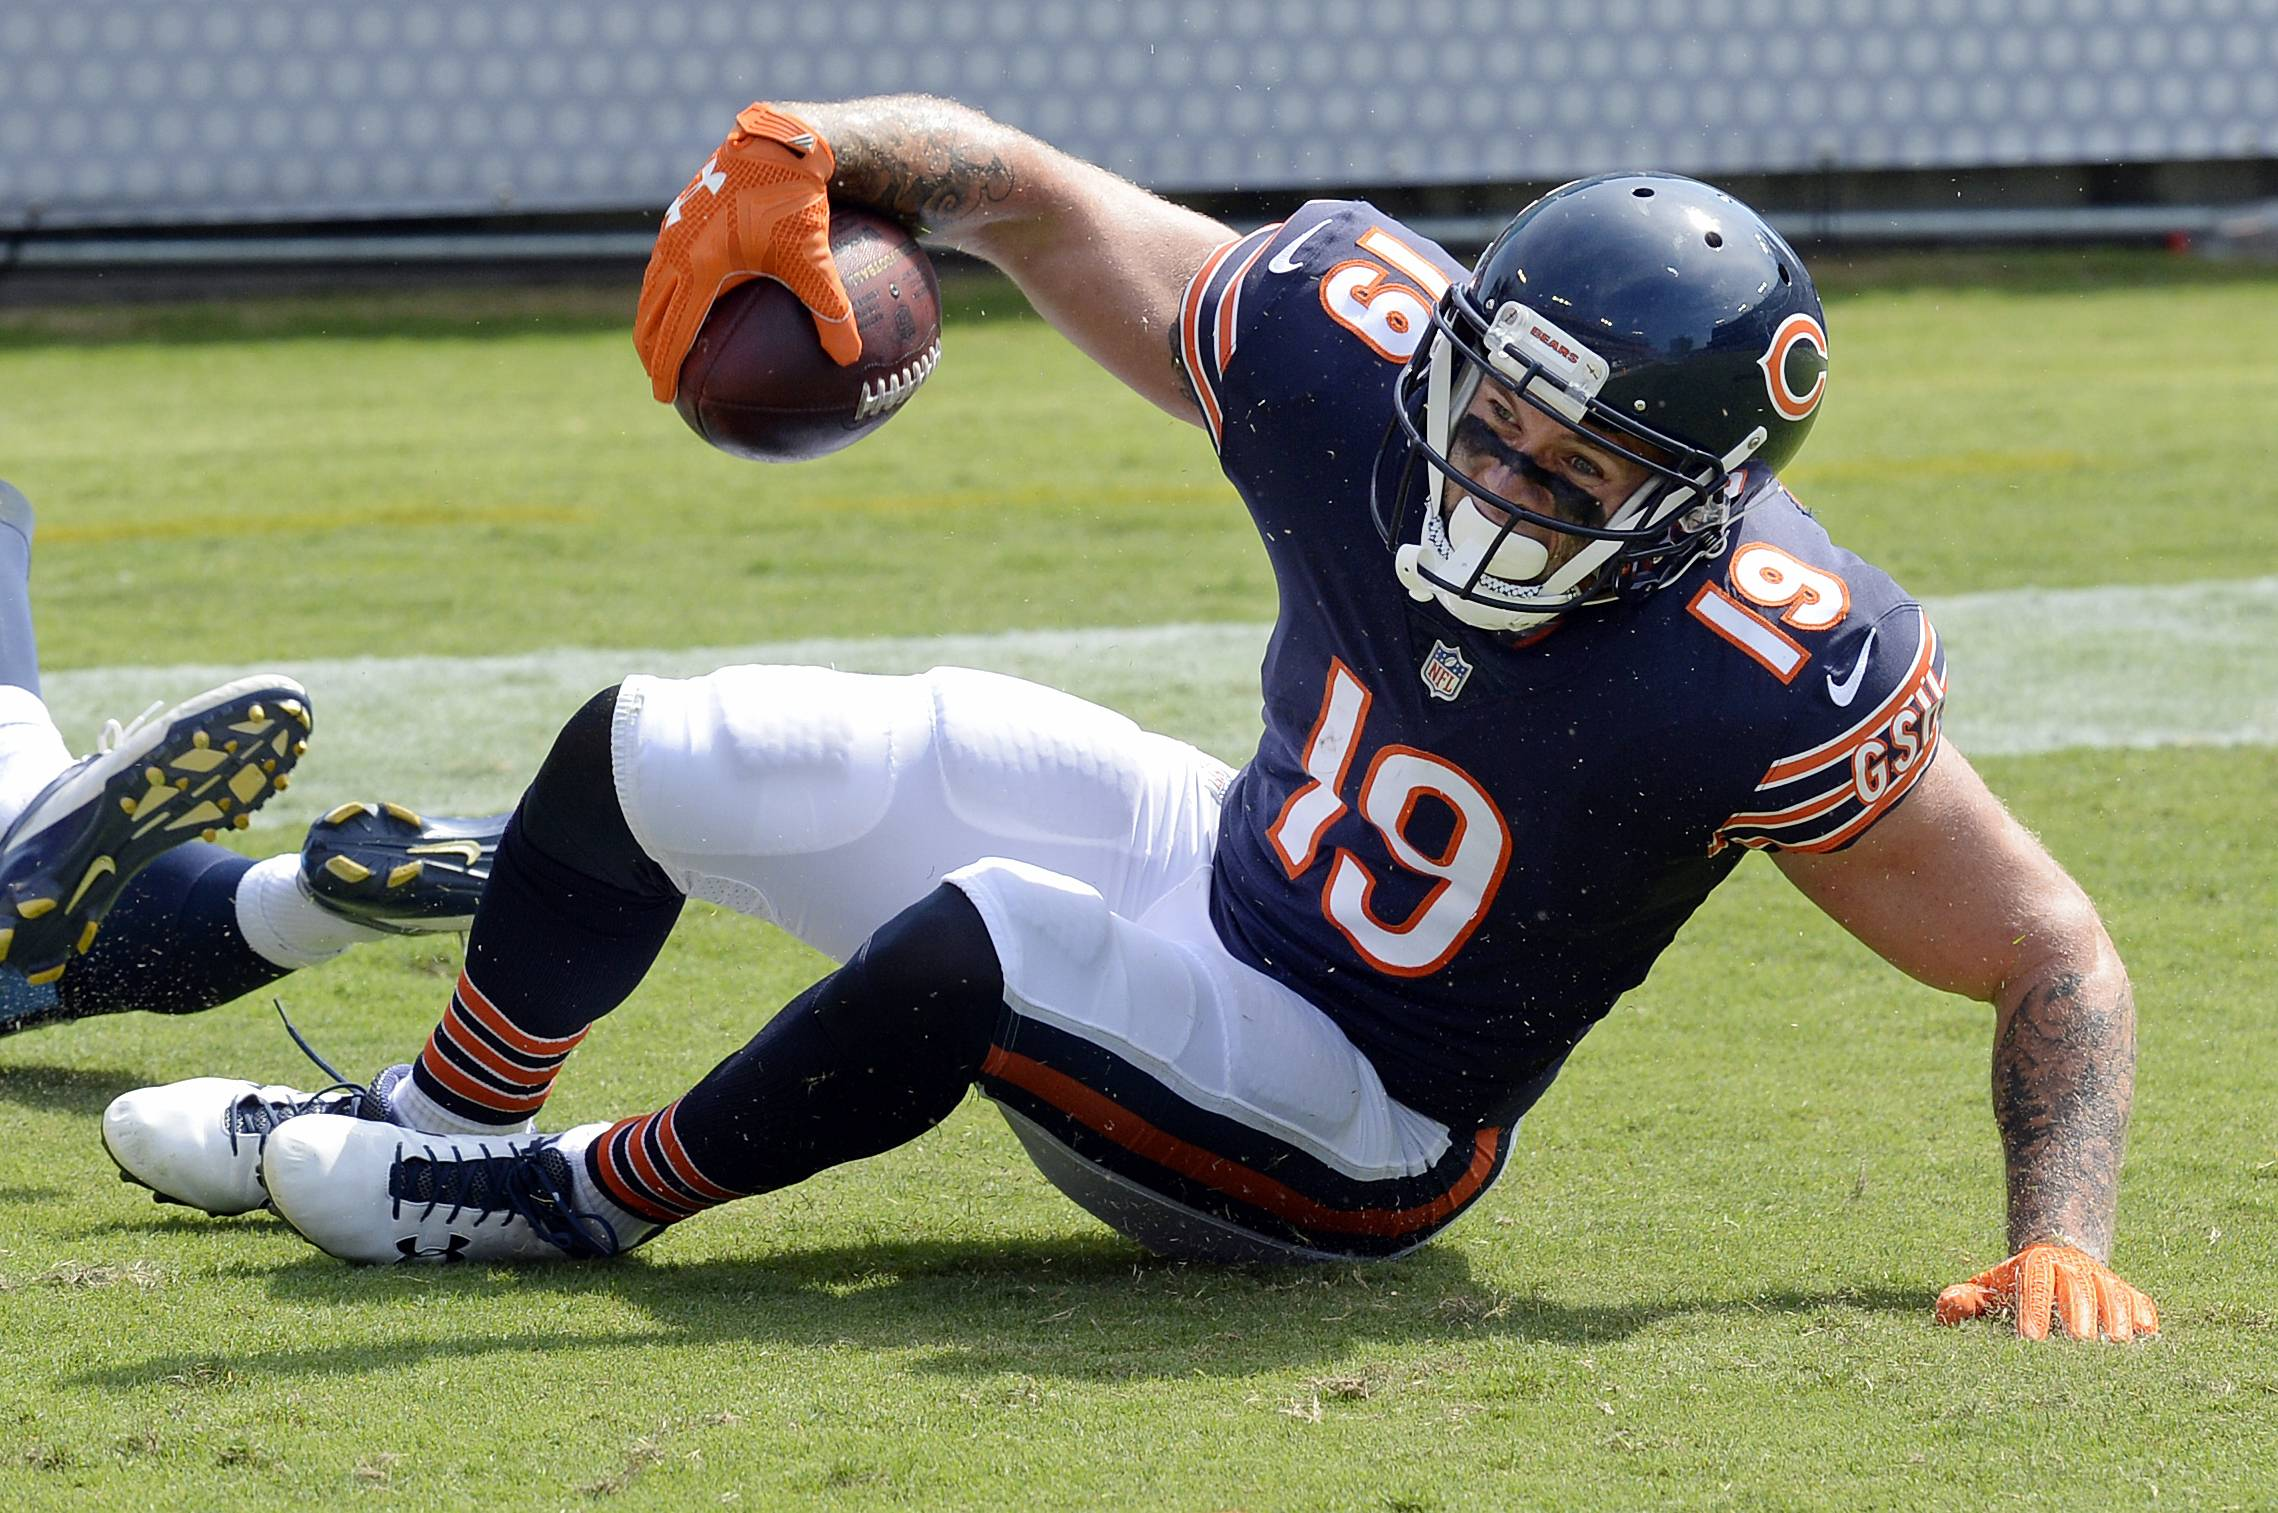 Chicago Bears wide receiver Tanner Gentry (19) catches a pass in the end zone as he scores a touchdown on a 45-yard pass play against the Tennessee Titans in the second half of an NFL football preseason game Sunday, Aug. 27, 2017, in Nashville, Tenn.